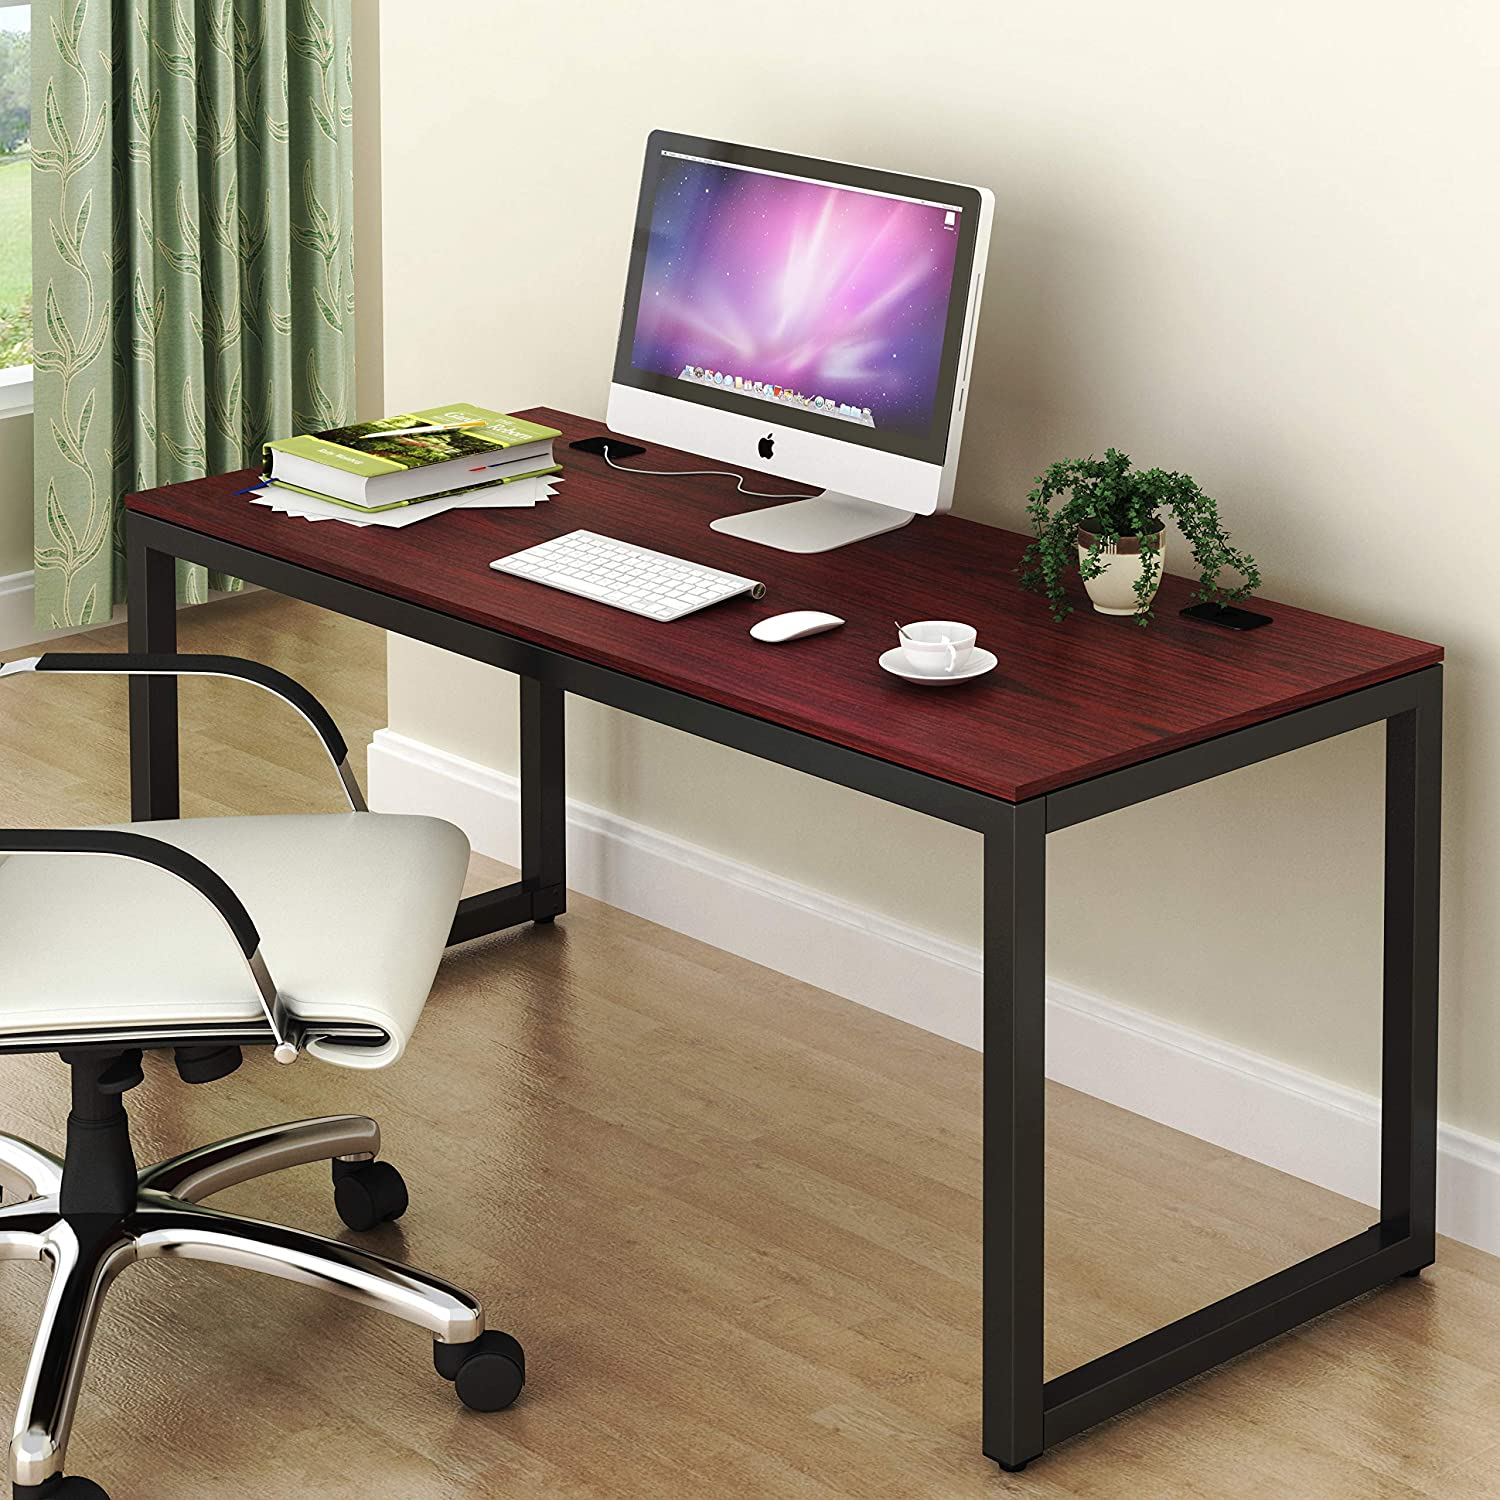 SHW Home Office 55-Inch Large Computer Desk (Cherry)